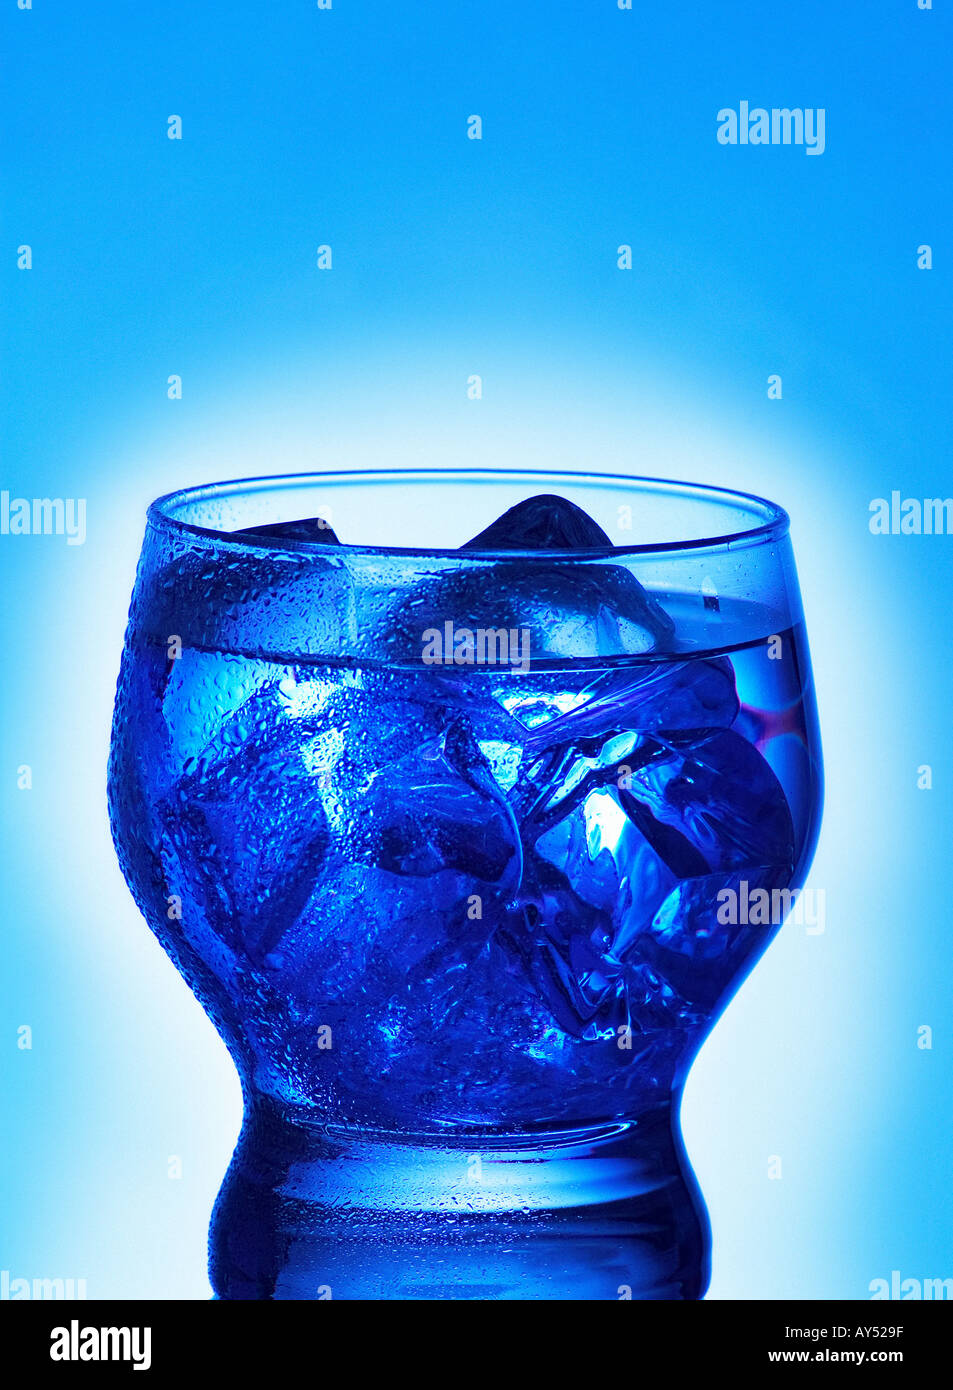 DRINK OF MINERAL WATER Stock Photo